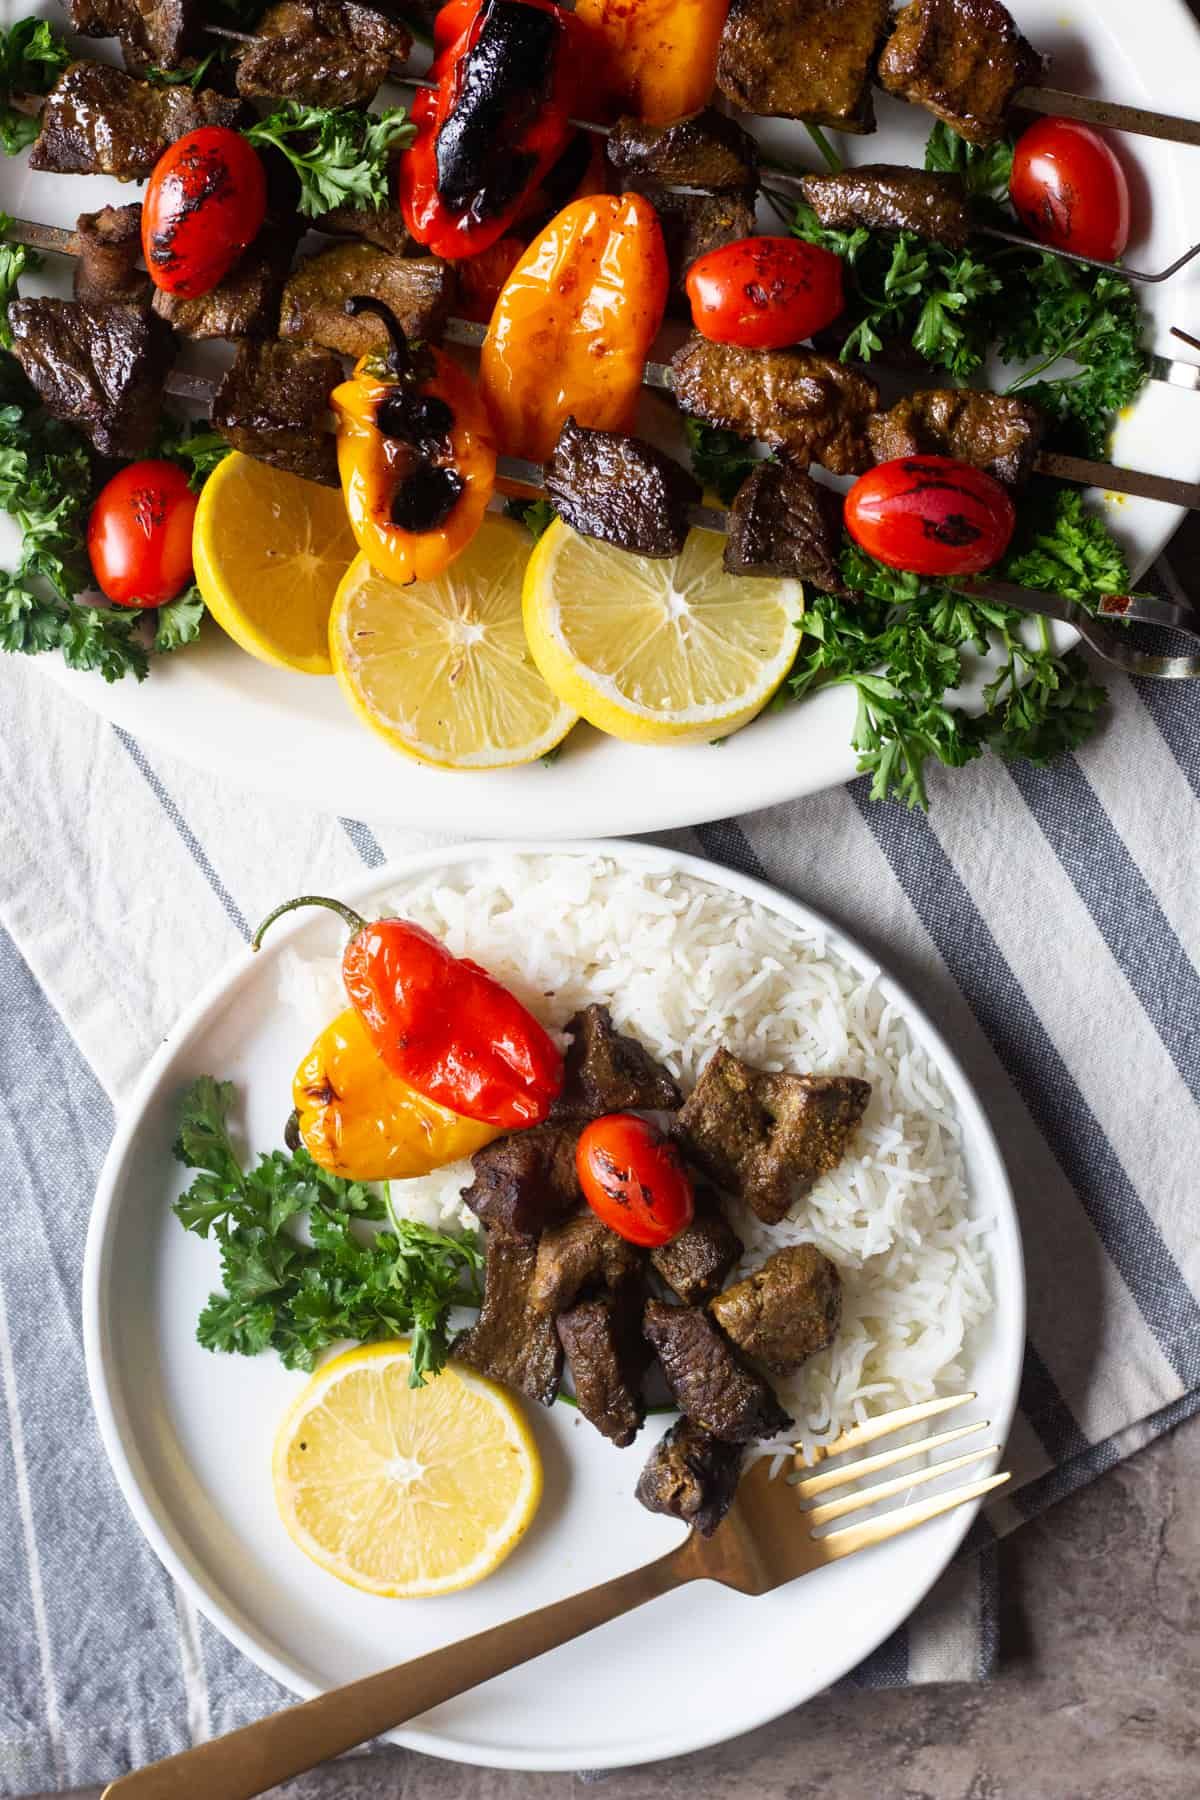 An easy beef shish kabob recipe that's packed with amazing flavors. Learn all the tips and tricks for making the best shish kabobs at home.